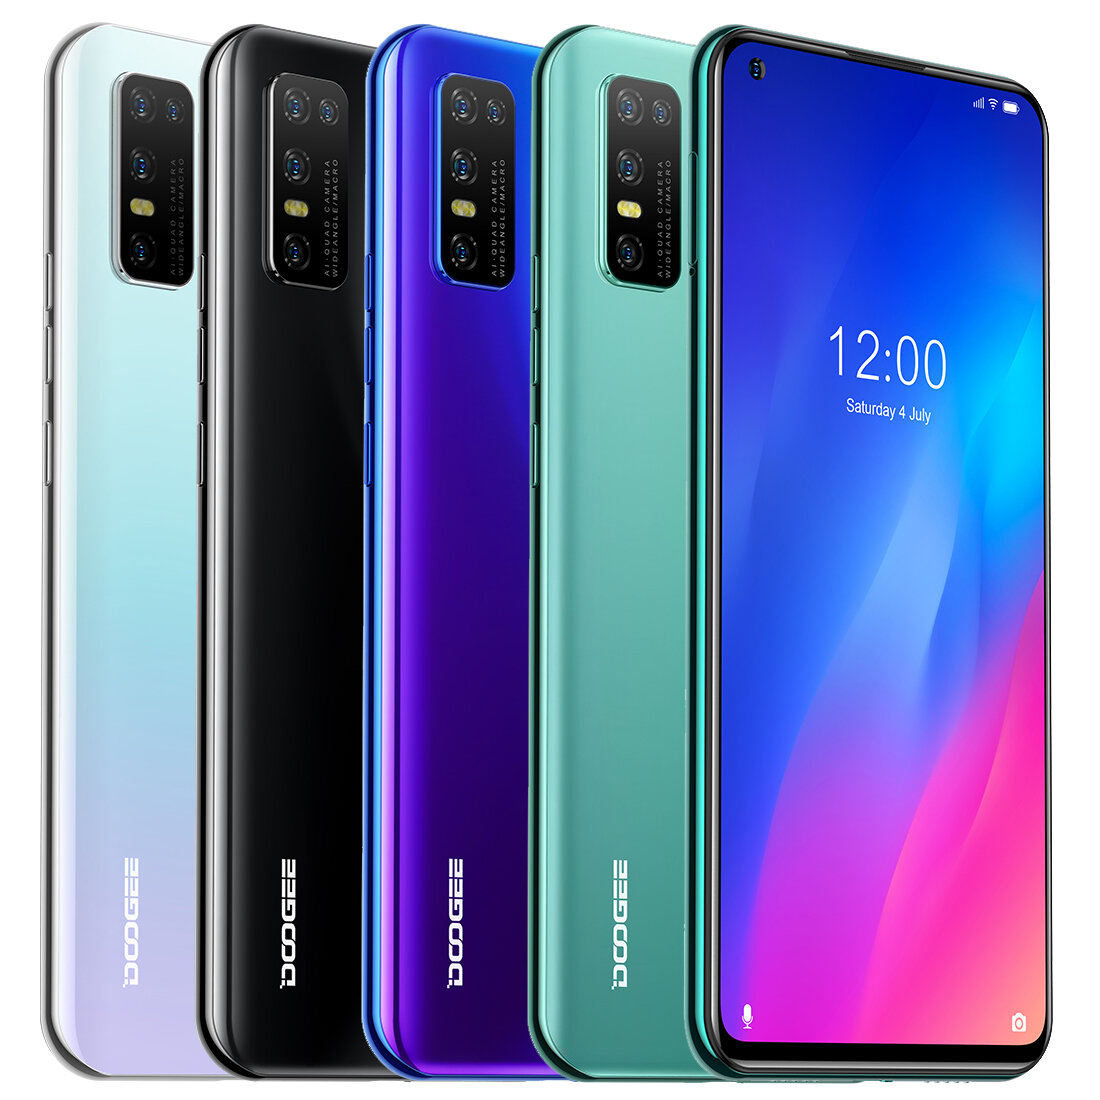 DOOGEE N30 Global Bands 4GB 128GB Helio A25 Android 10 6.55 inch Perforated Screen 4180mAh 16MP AI Quad Rear Camera 4G S